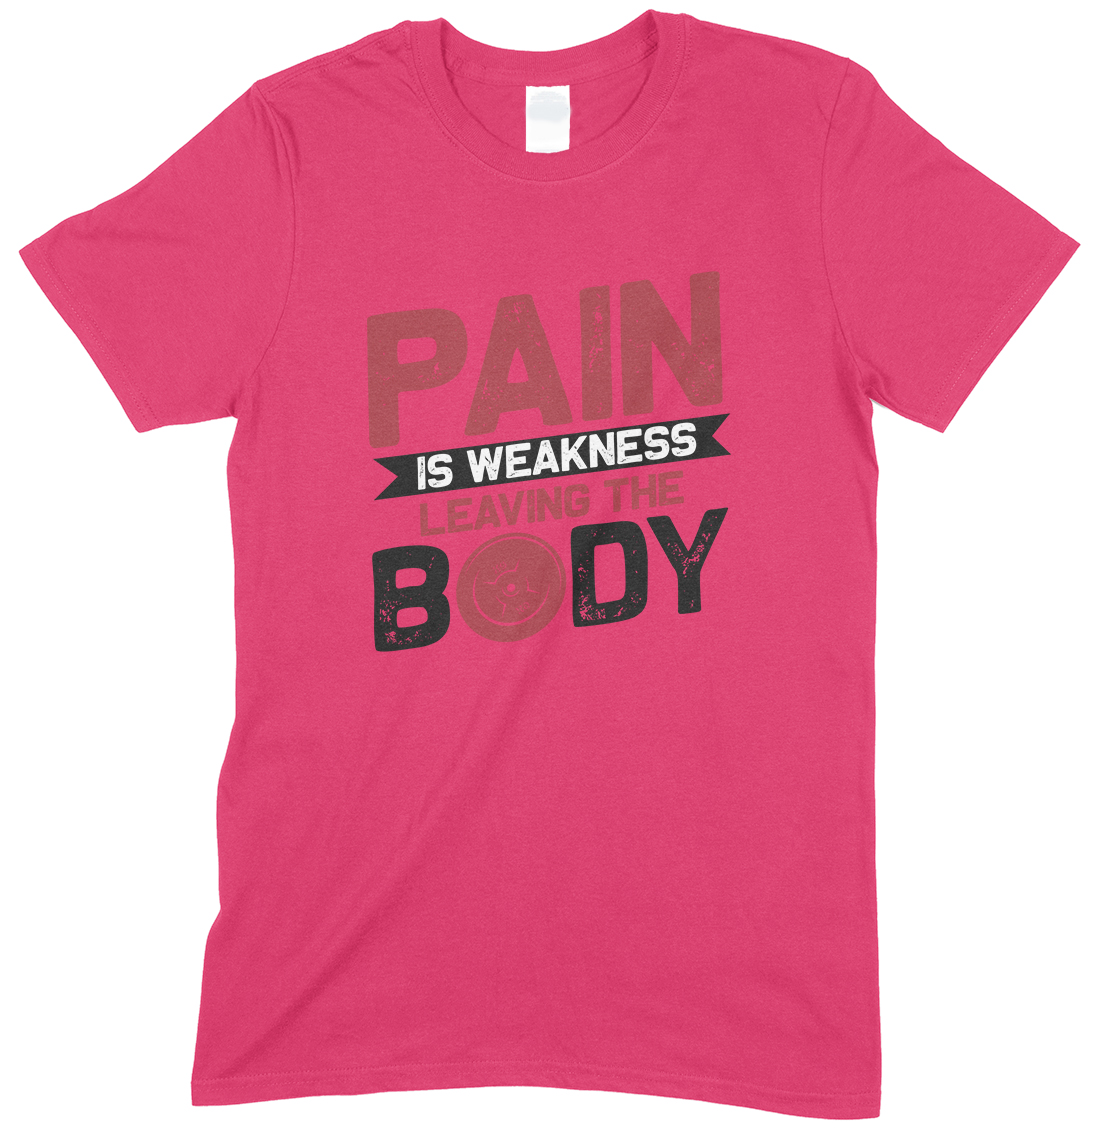 Pain is Weakness Leaving The Body -Children's T Shirt Boy-Girl